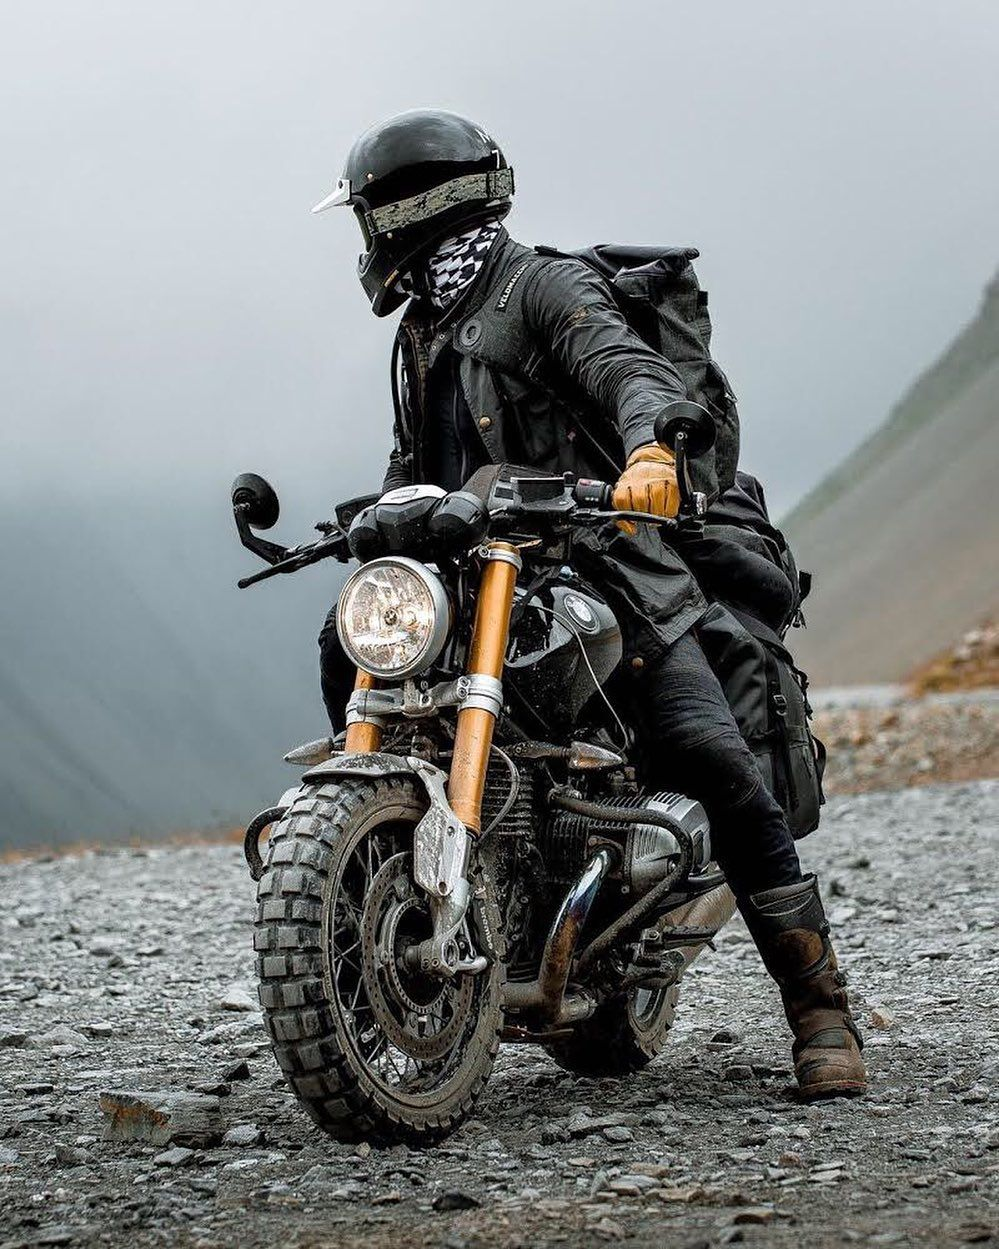 Cafe Racers Modern Classics On Instagram Let The Adventure